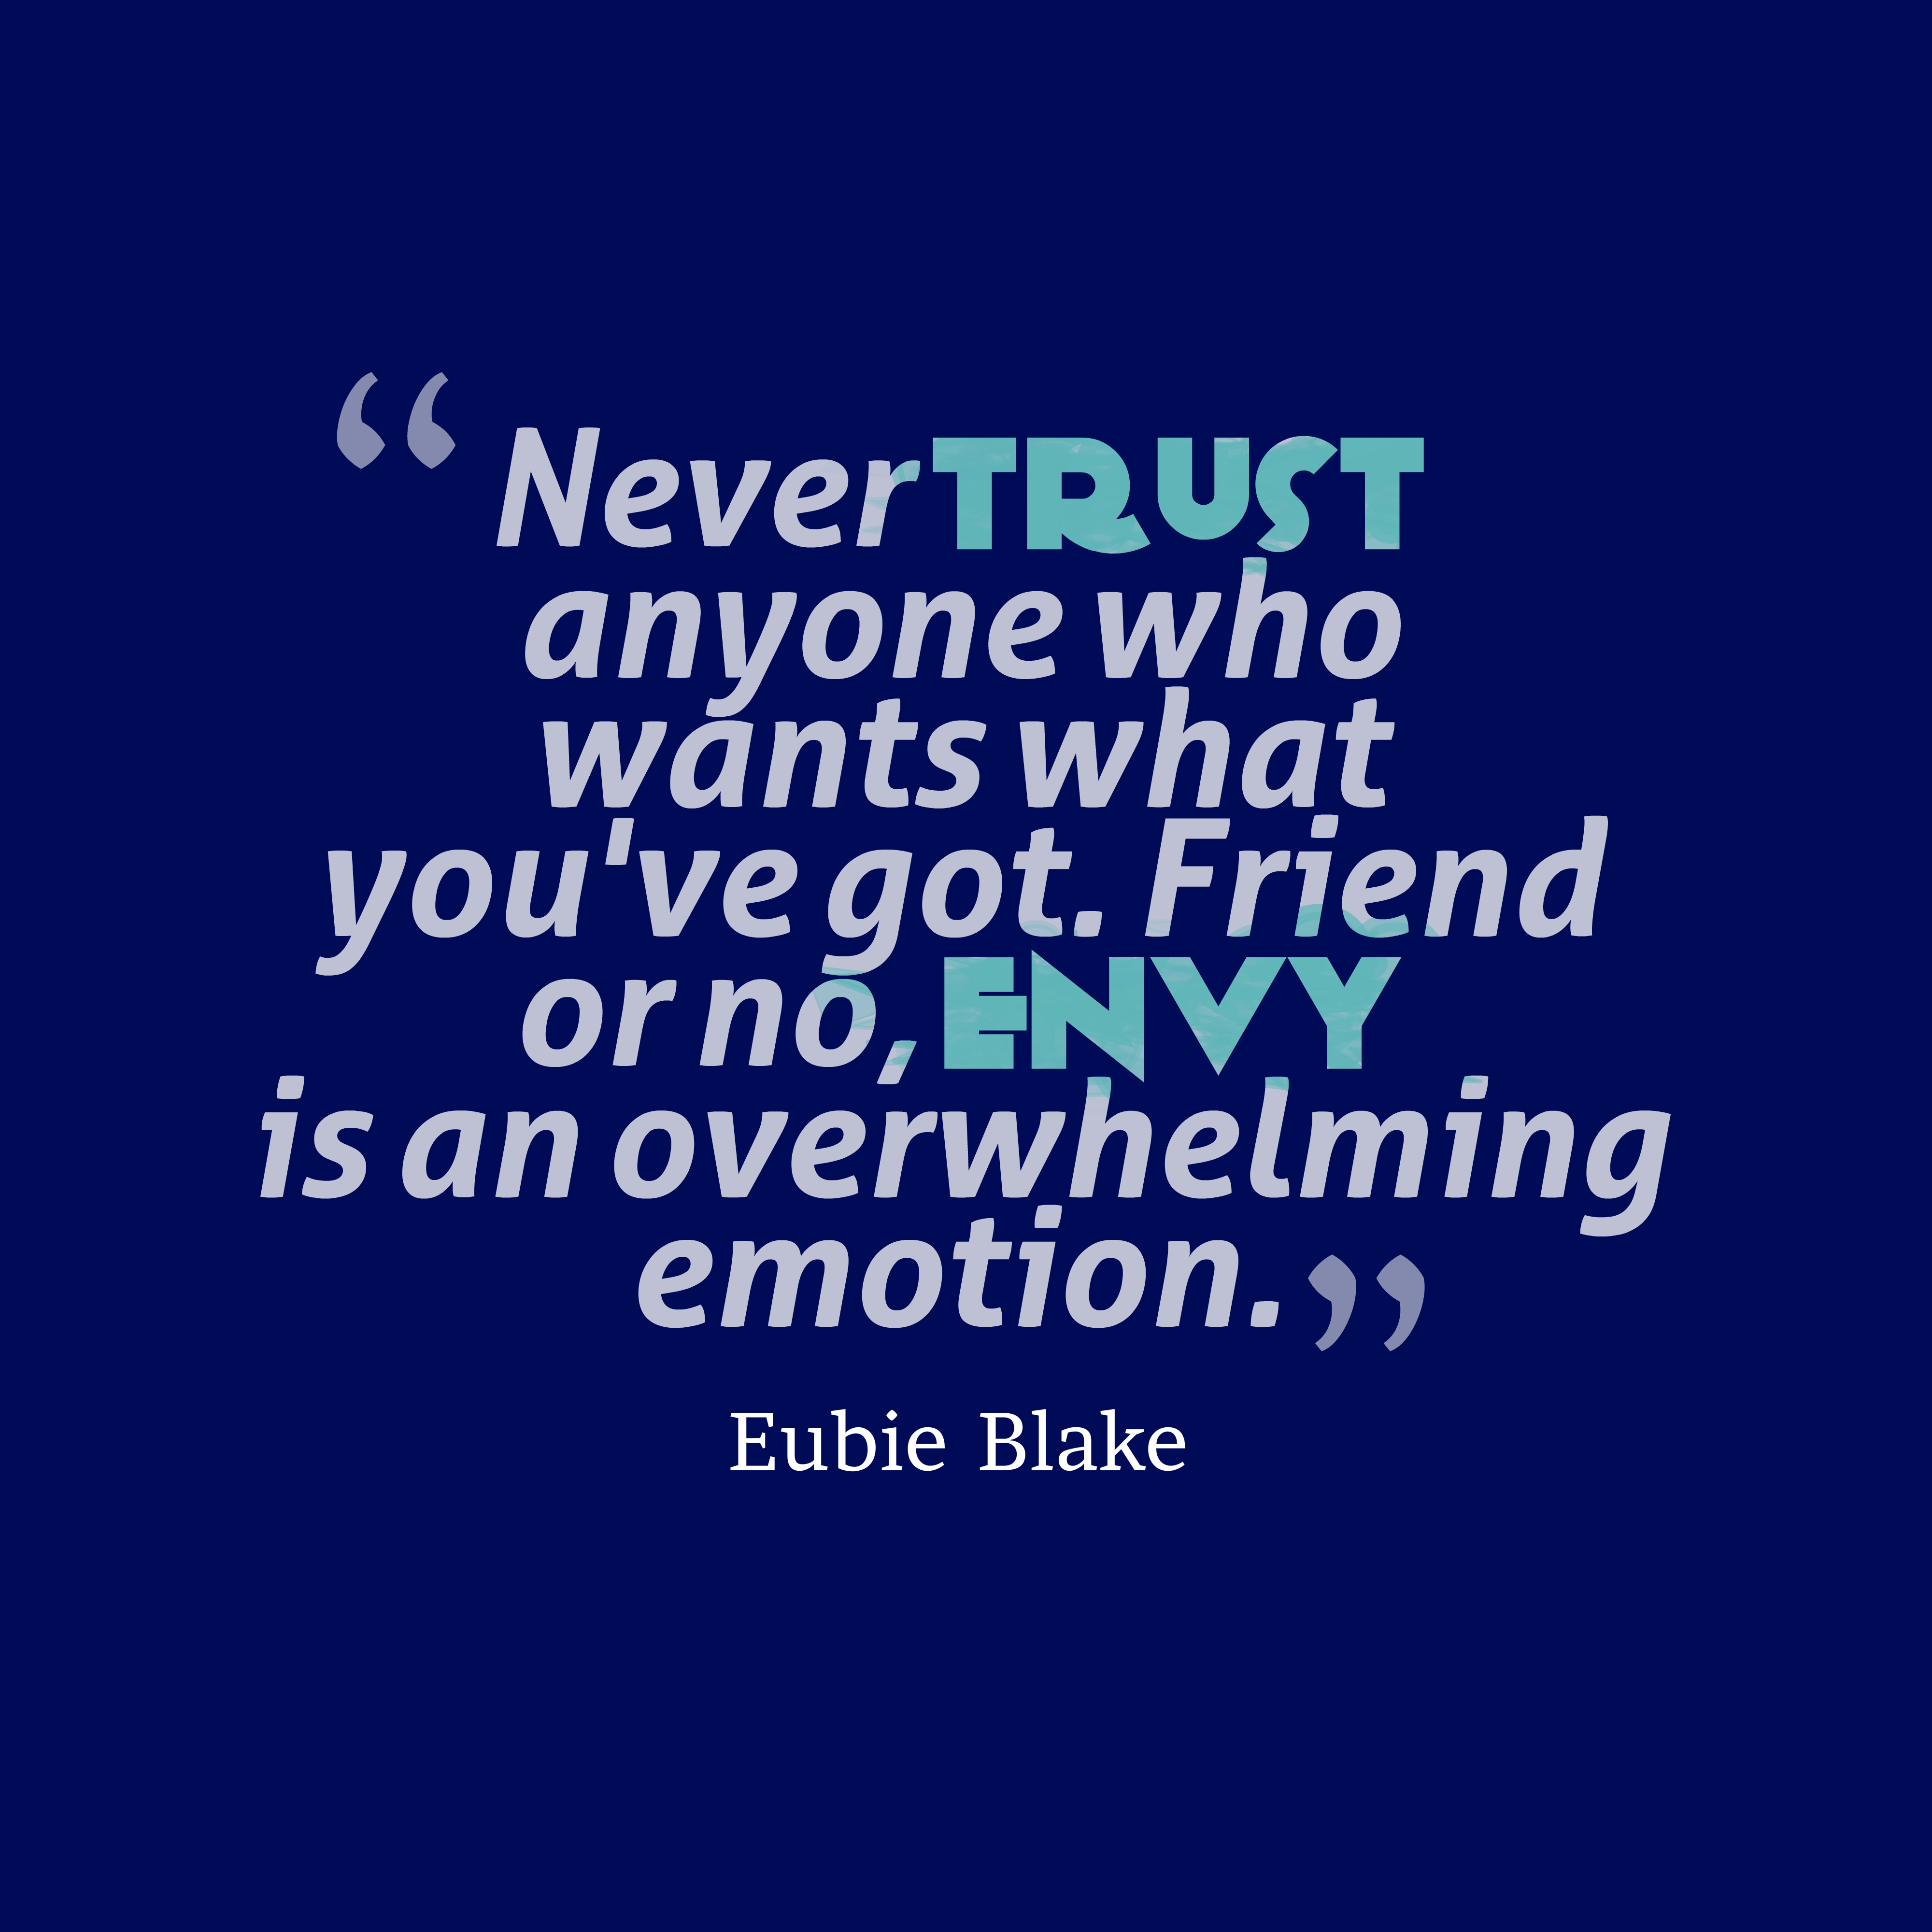 Download High Resolution Quotes Picture Maker From Eubie